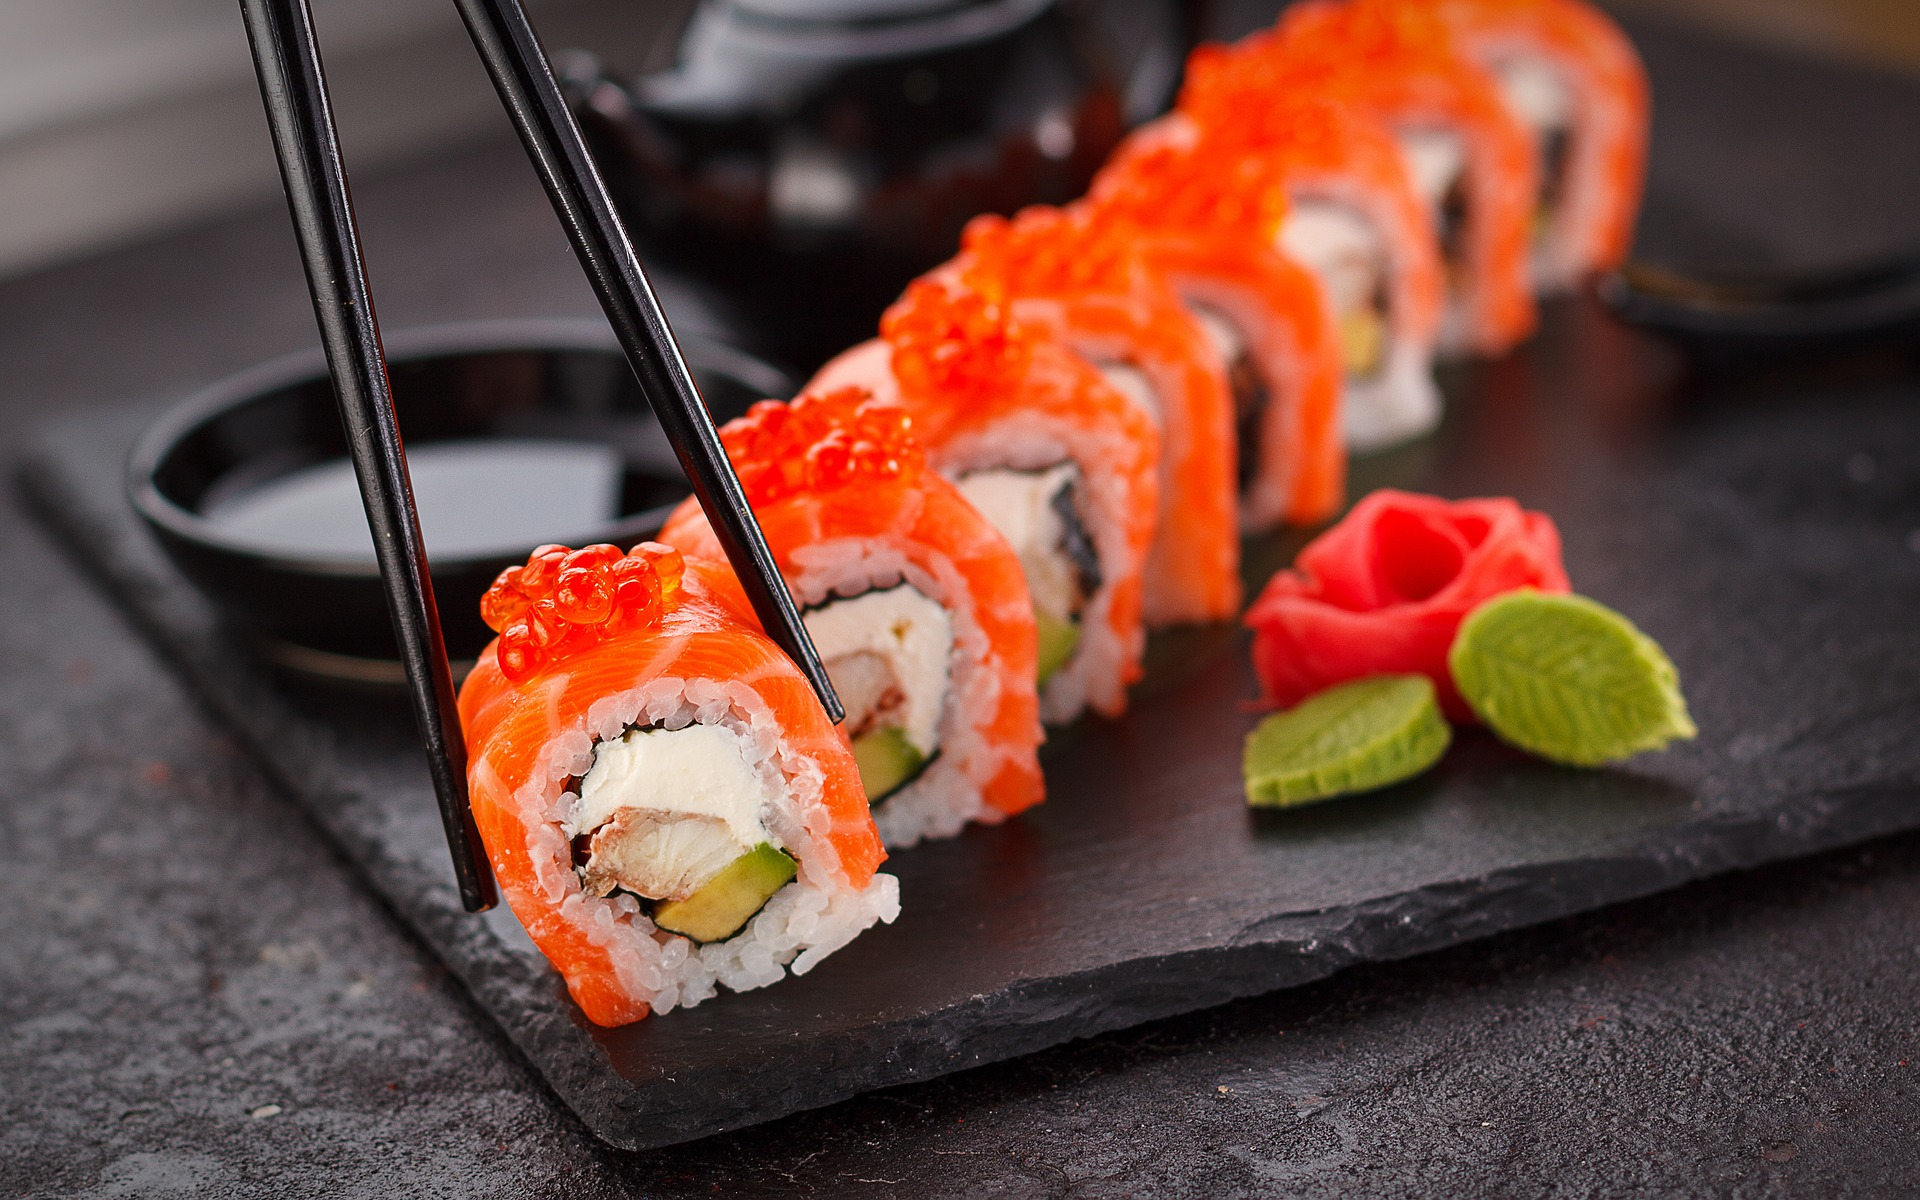 King West is home to several sushi restaurants (Image Credit: Pixabay).